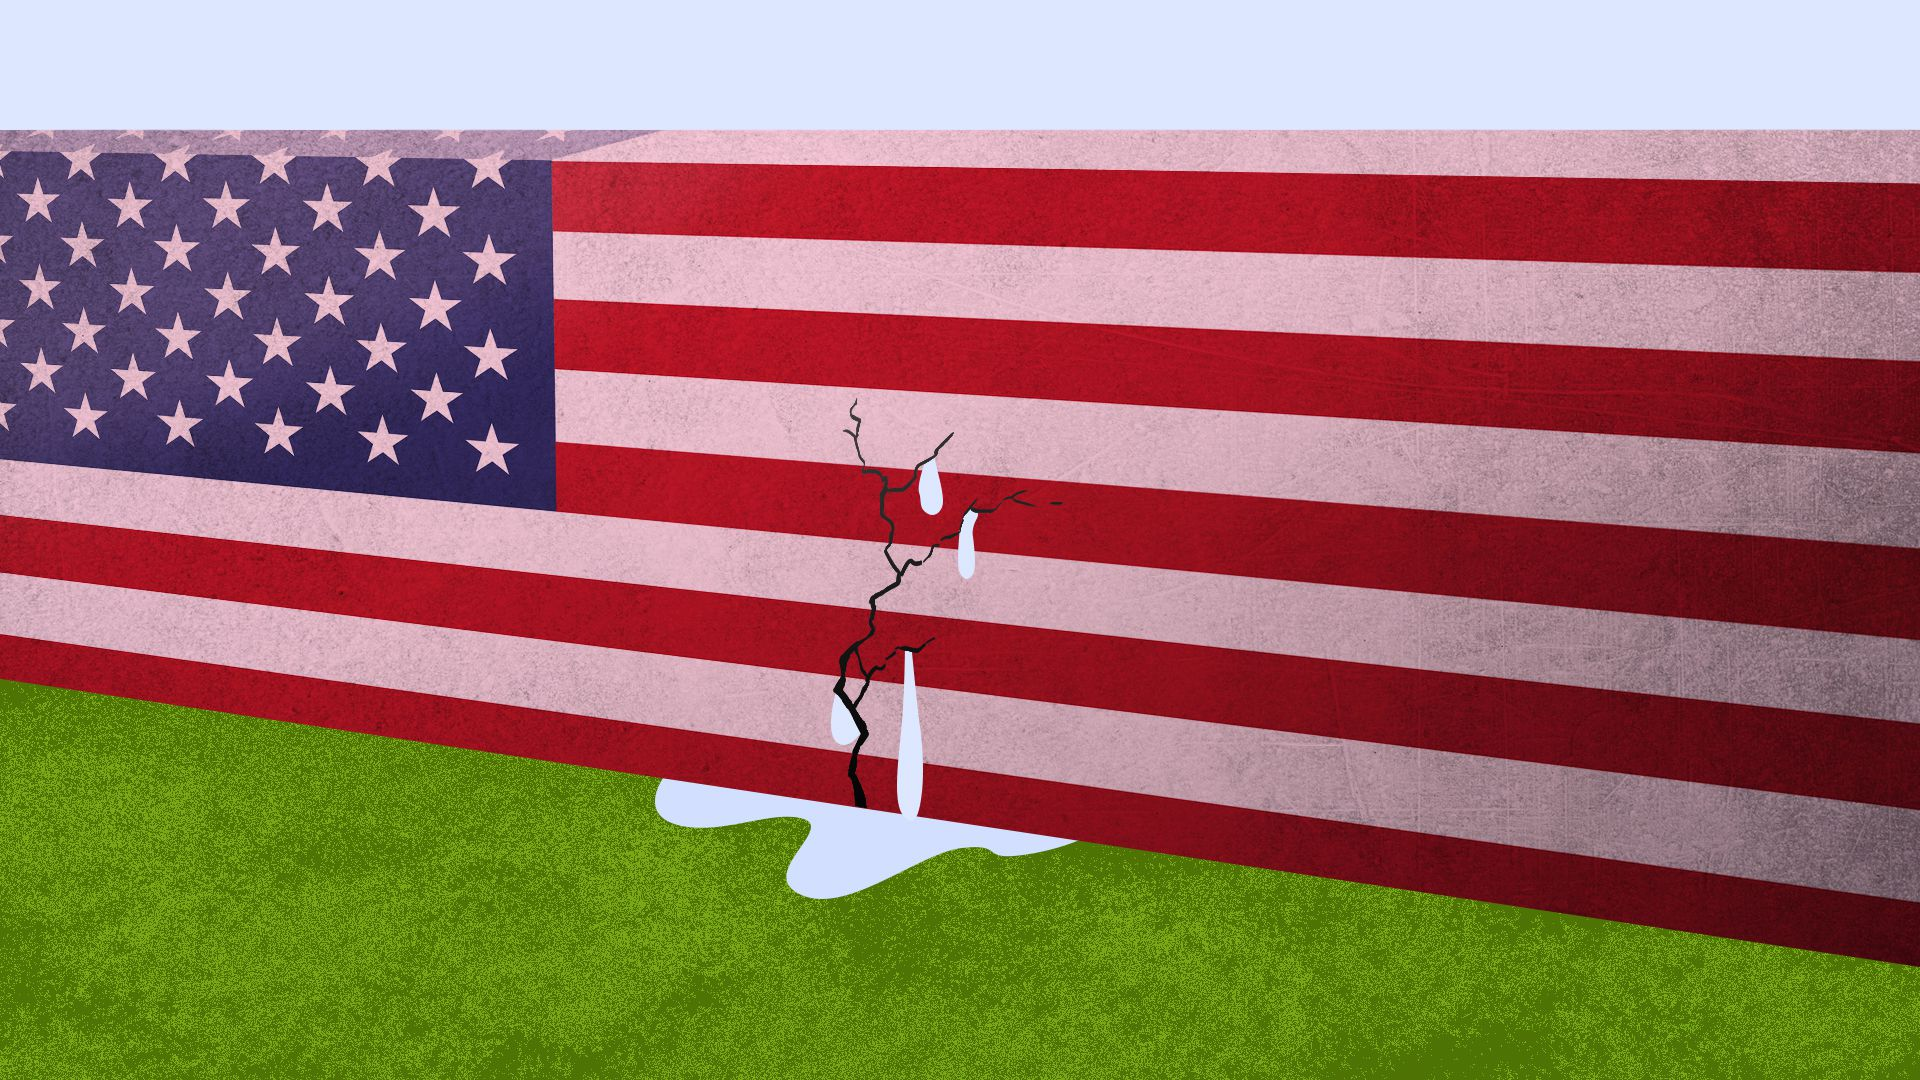 Illustration of American flag damn with crack in it and water spilling out